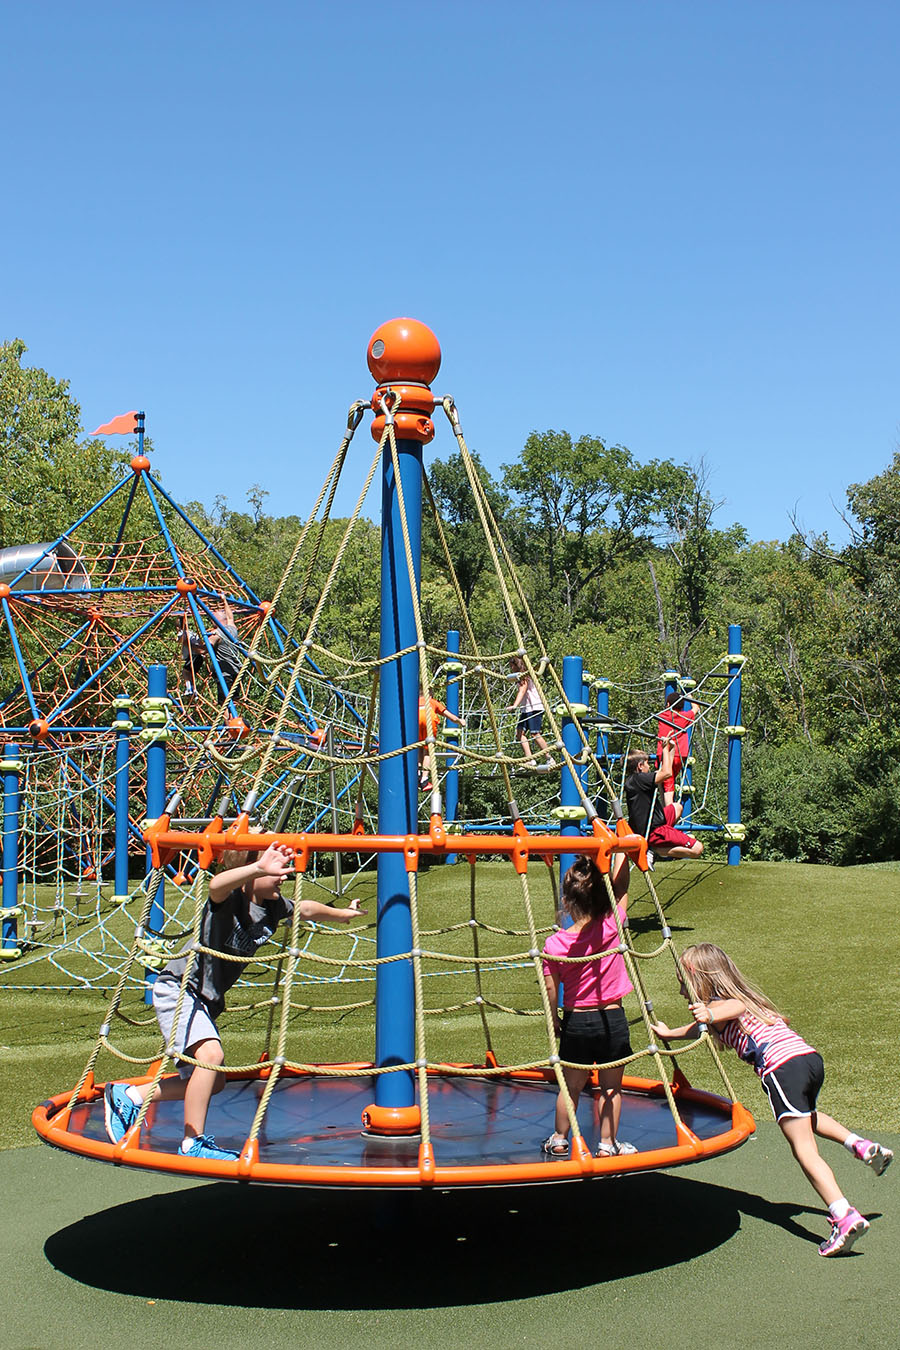 Three children play at Valley Park in Grandview, Missouri Aug. 21. photo by Meghan Baker